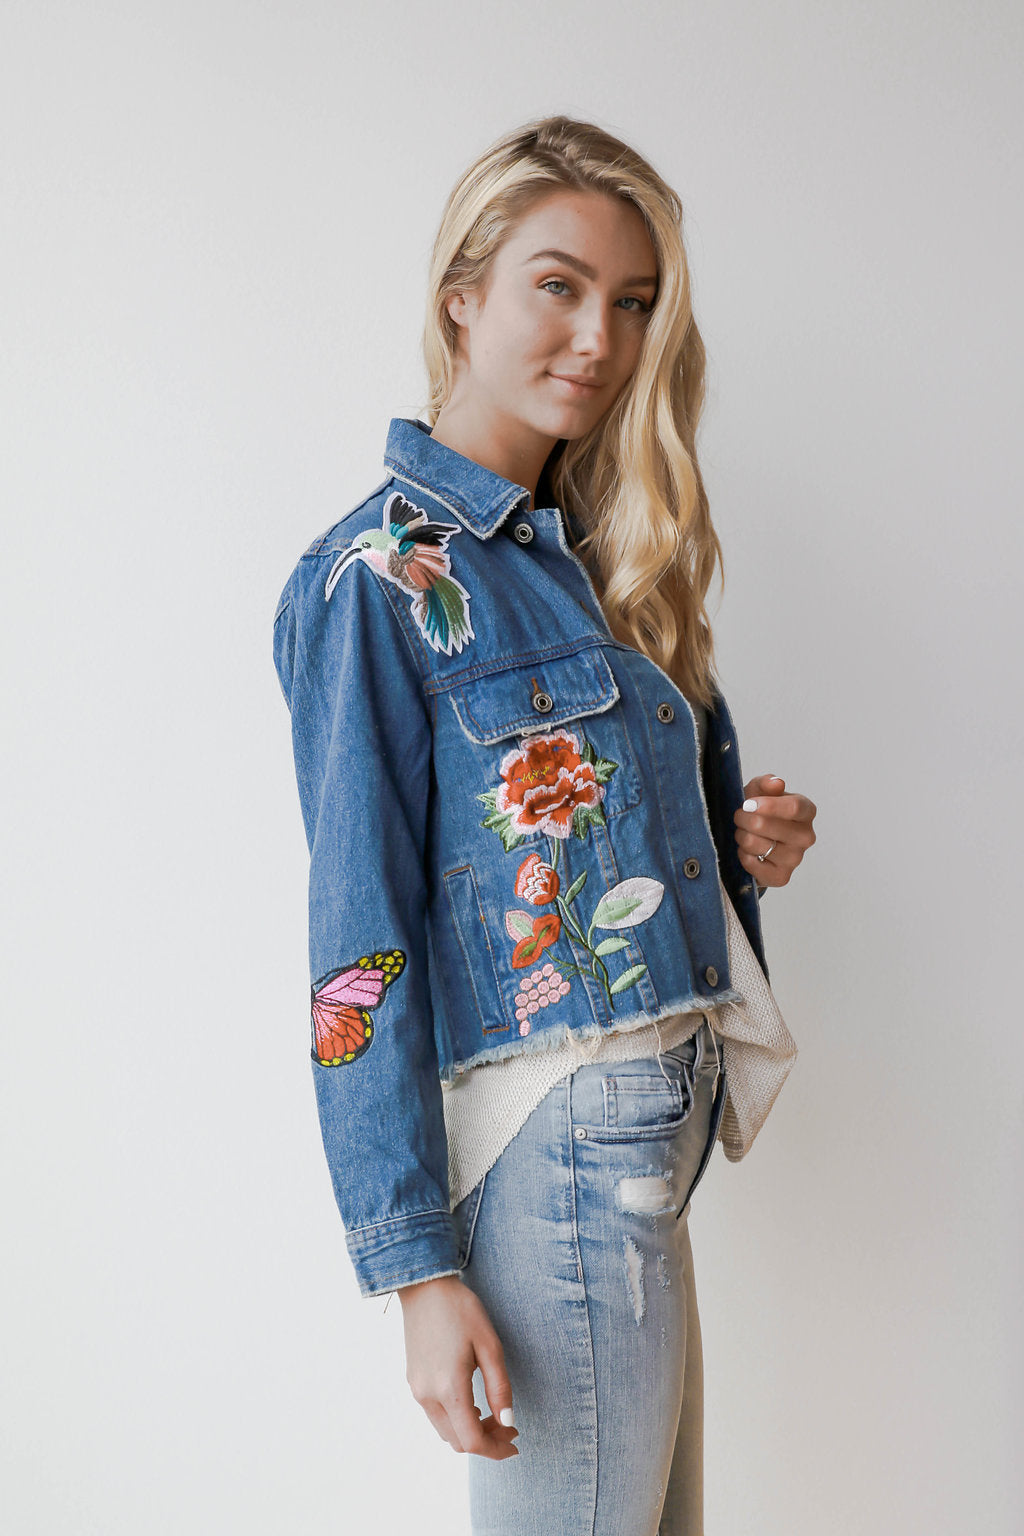 mode, childhood dreams embroidered jacket